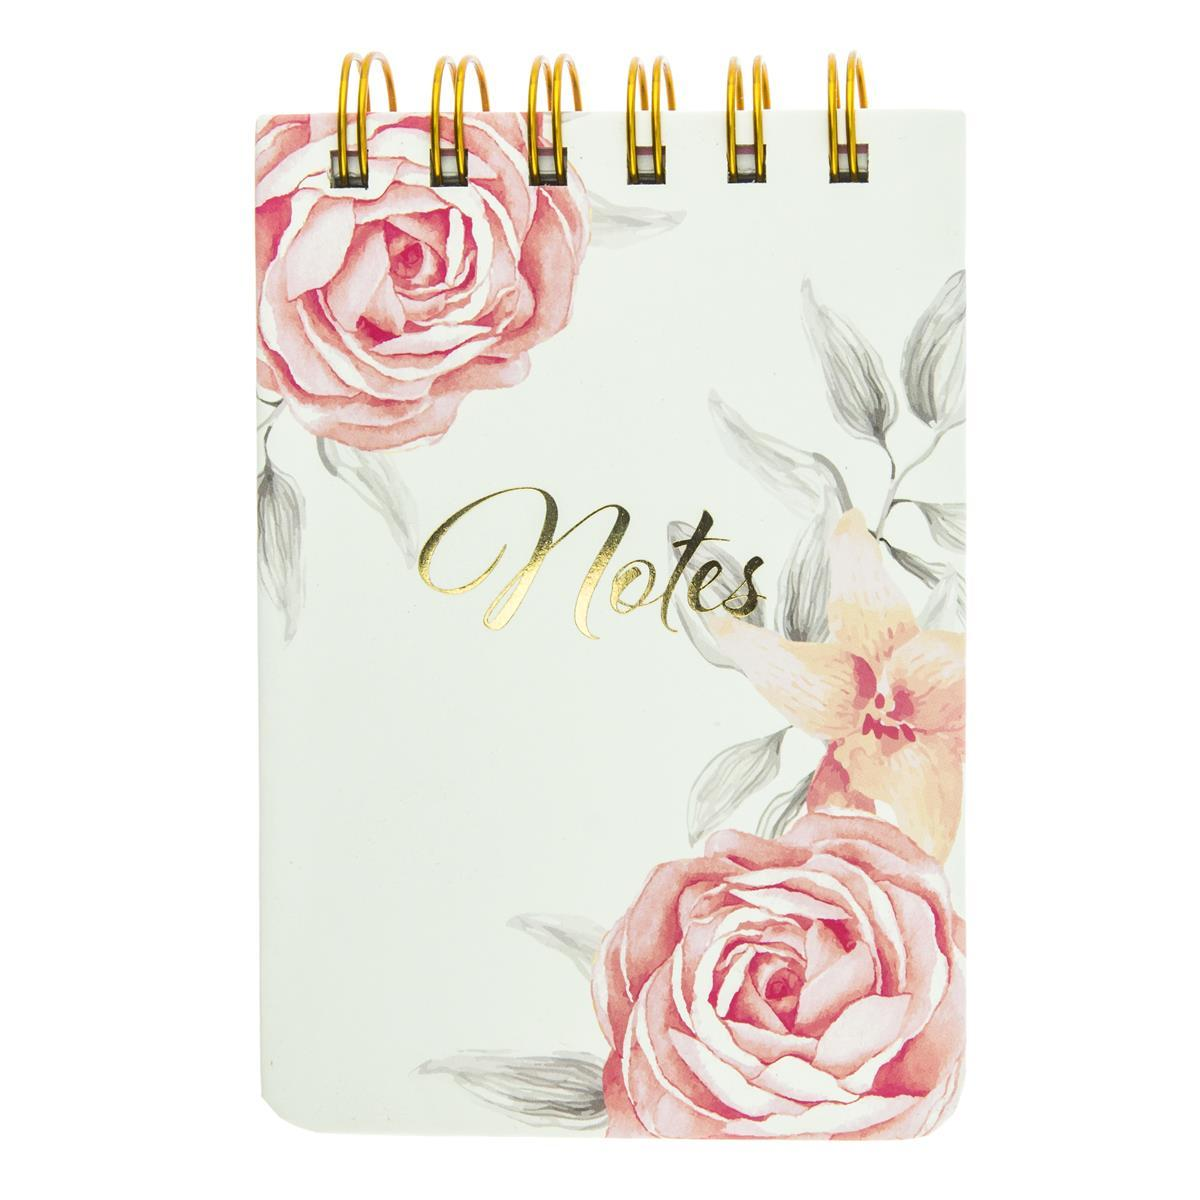 Vintage Roses Petite Wiro Notepad